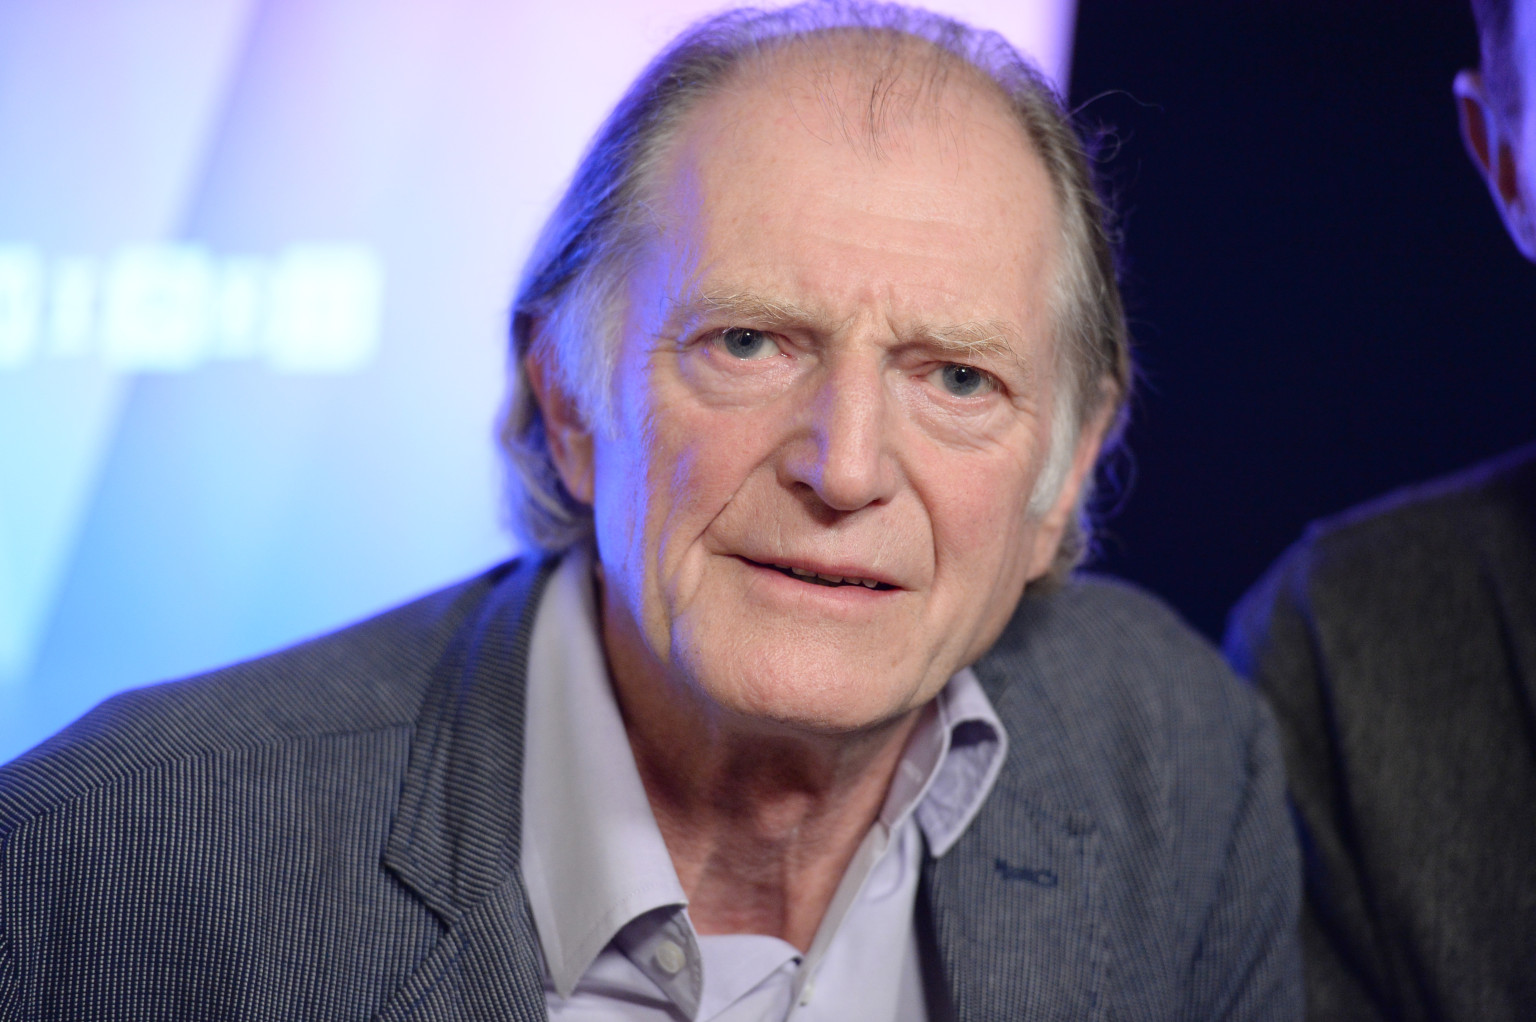 david bradley (iv)david bradley ninja, david bradley games, david bradley kes, david bradley wme, david bradley american actor, david bradley agent, david bradley hard time moving on lyrics, david bradley usa, david bradley hot fuzz, david bradley (iv), david bradley desperate housewives, david bradley actor, david bradley young, david bradley american ninja, david bradley doctor who, david bradley fan mail, david bradley interview, david bradley martial artist, david bradley wiki, david bradley wizardry